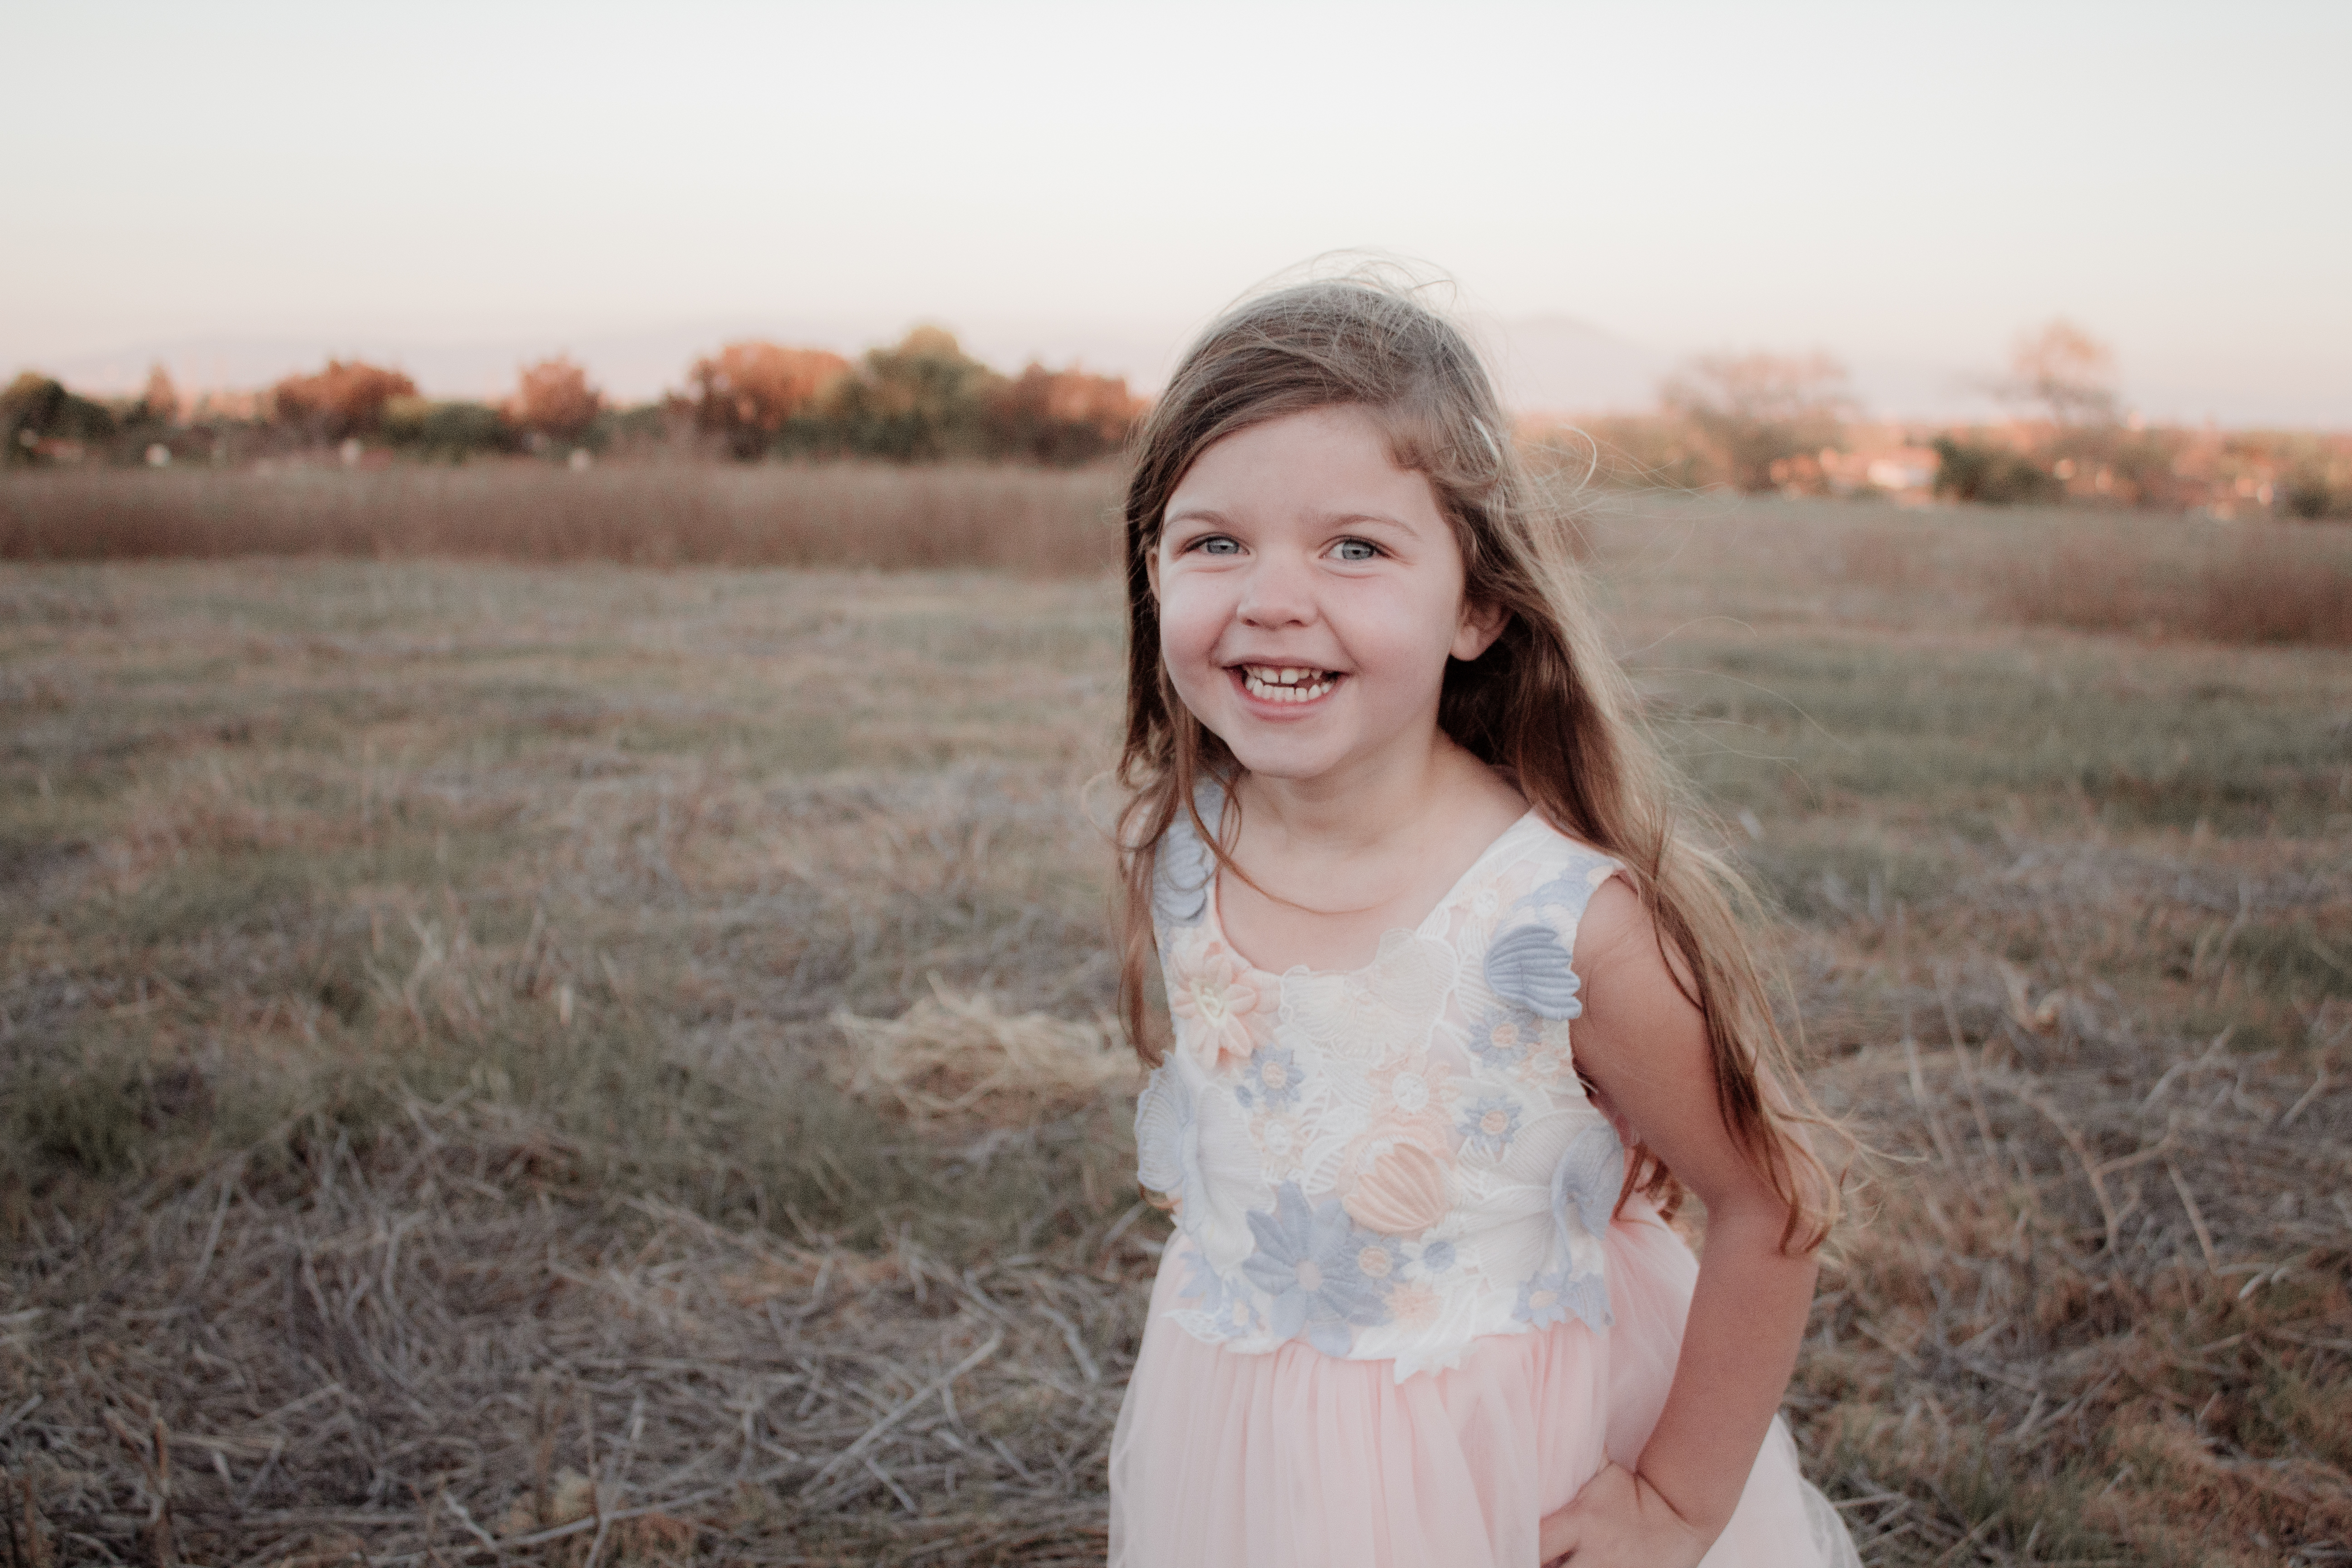 A photo of a little girl in a peach colored dress in a meadow.